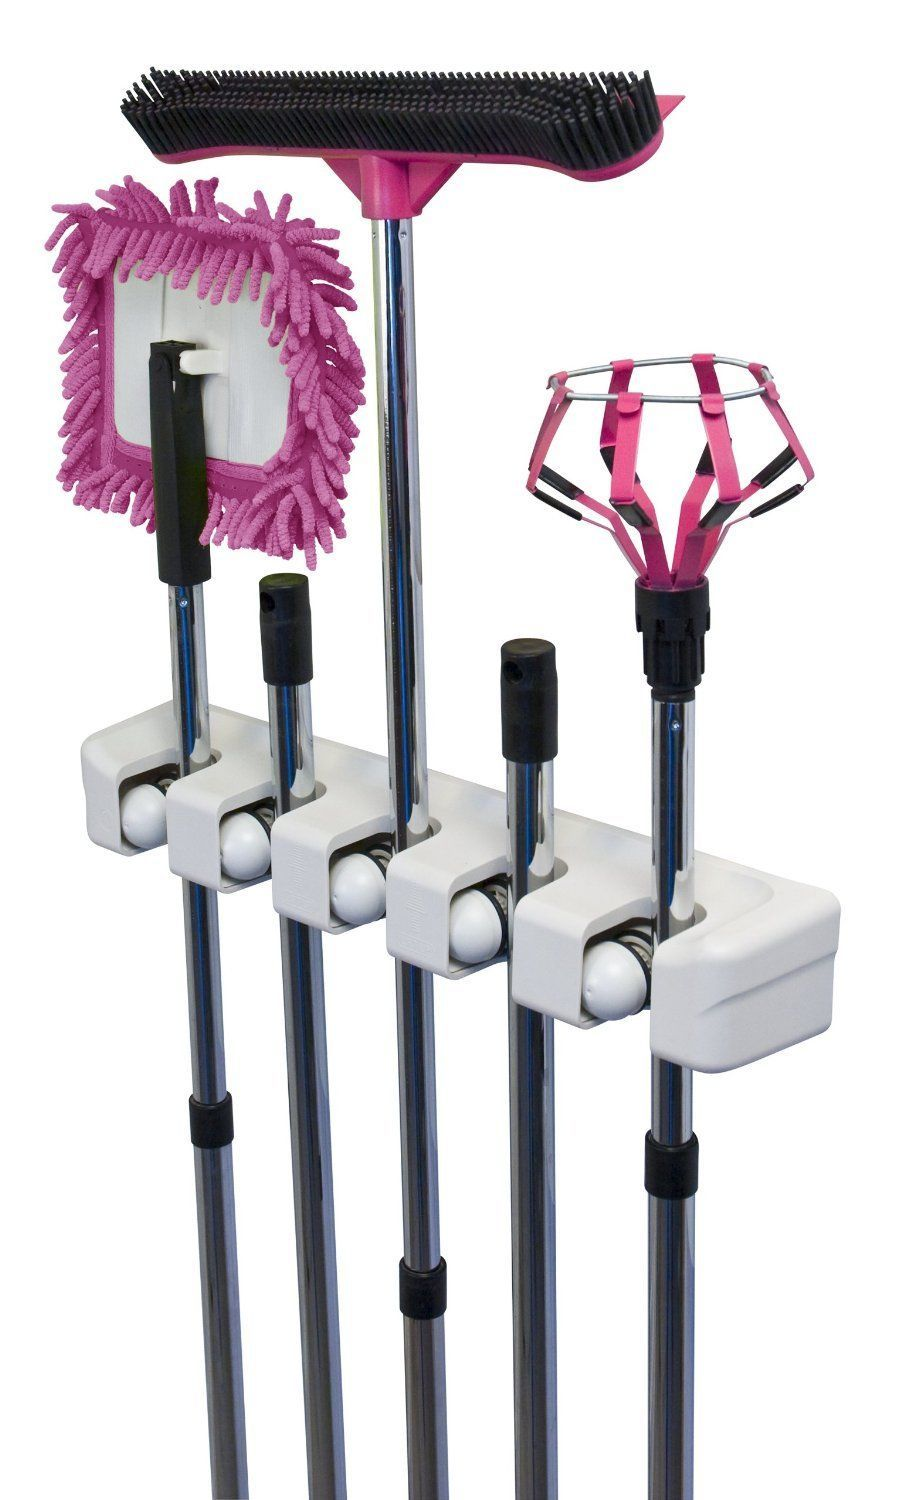 Evriholder Magic Holder 5-Position Wall Organizer, Utility,Room,Broom,Tool, Rack